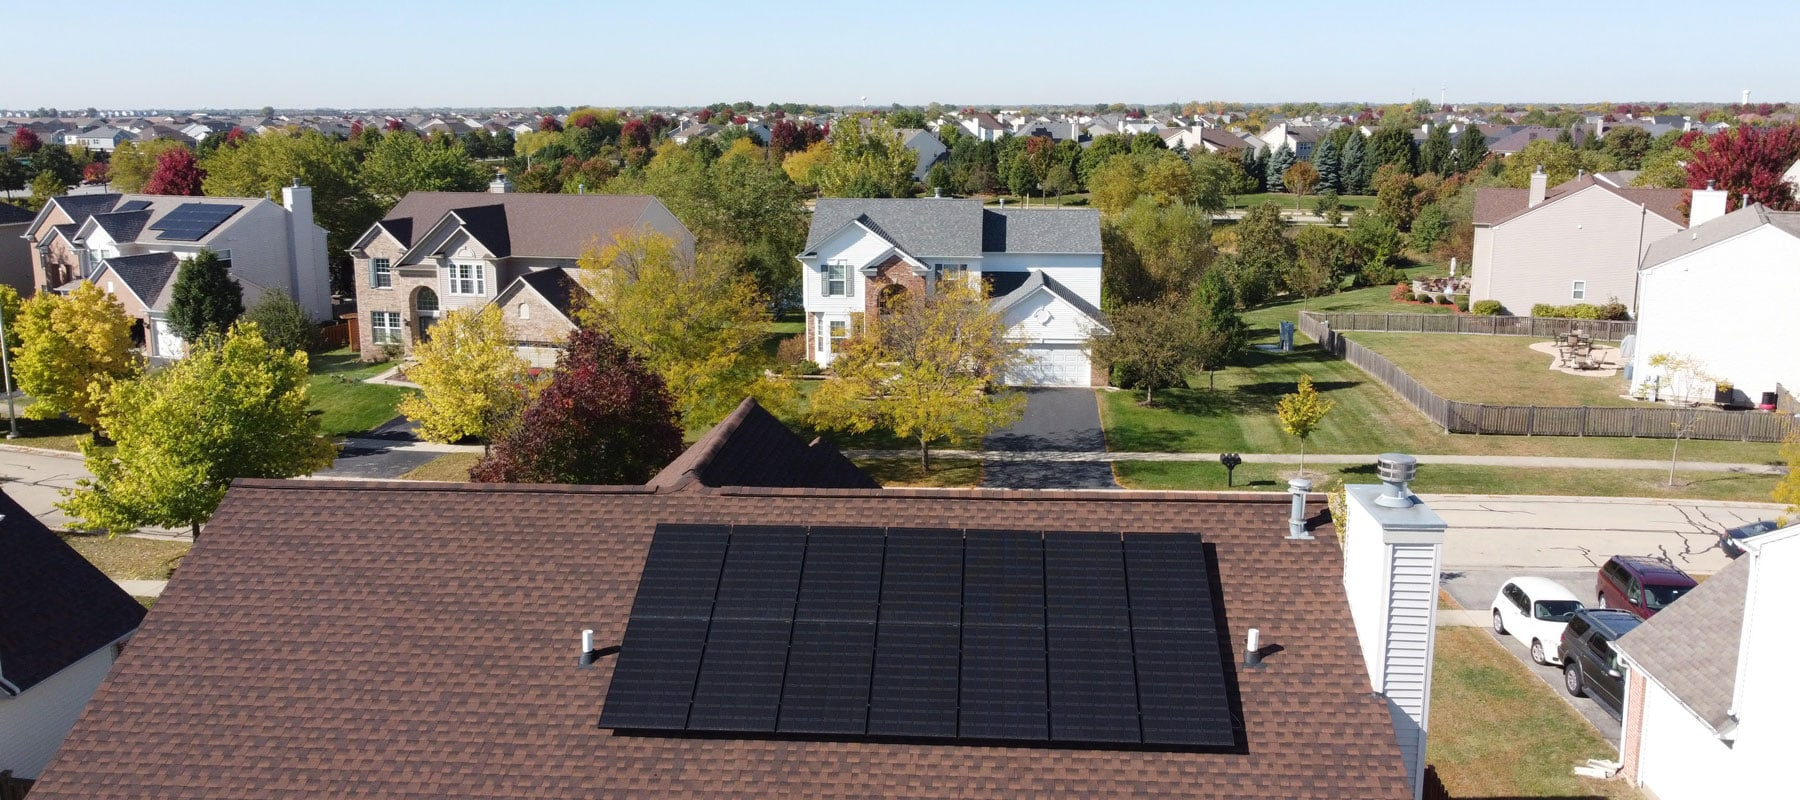 What Are Solar Panels Made Of? A Look At Solar Panel Materials | At Sun Badger Solar, it's our goal to provide our customers with the best possible solar panels. Solar panels can be manufactured in a number of ways and are constructed of quite a few different material options.